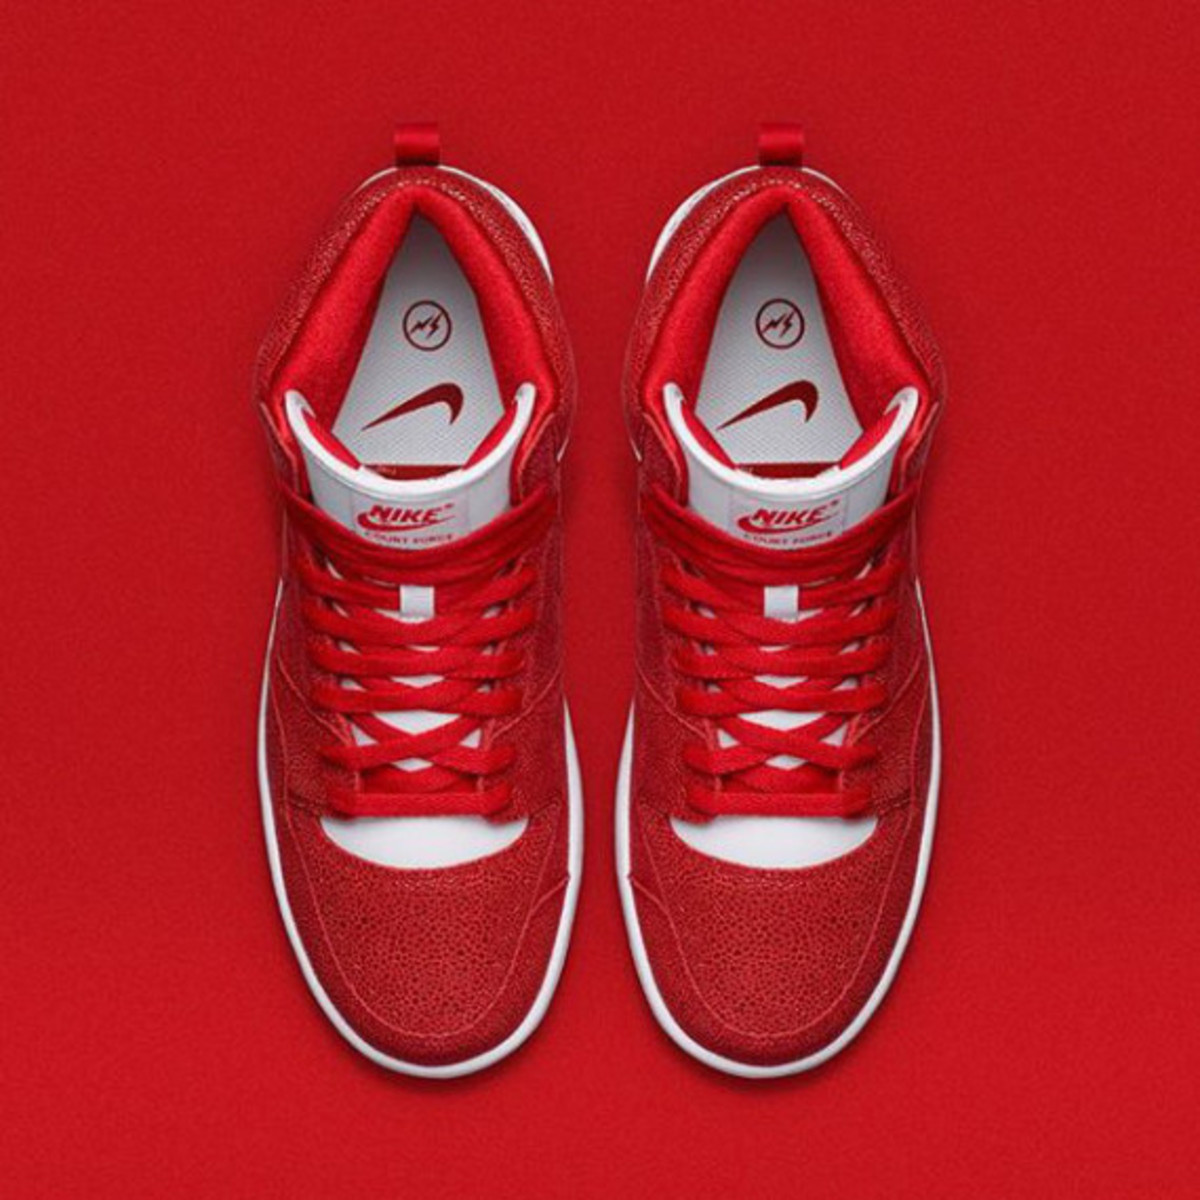 a-first-look-at-the-fragment-nikelab-court-force-02